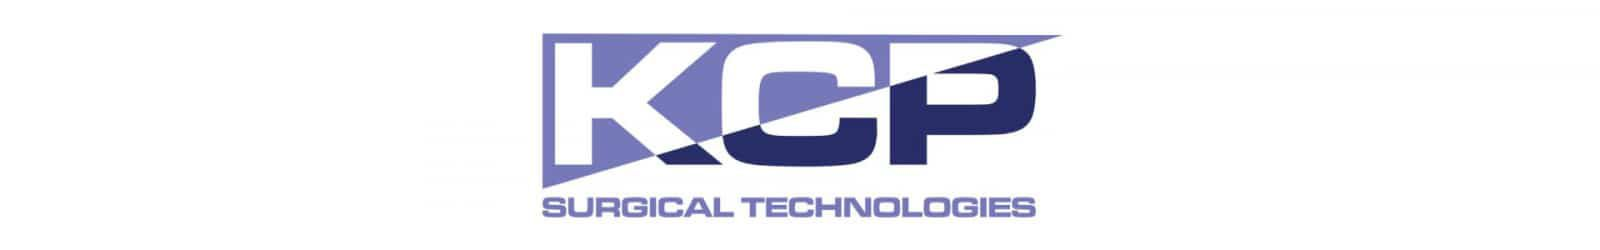 KCP surgical technology logo design example